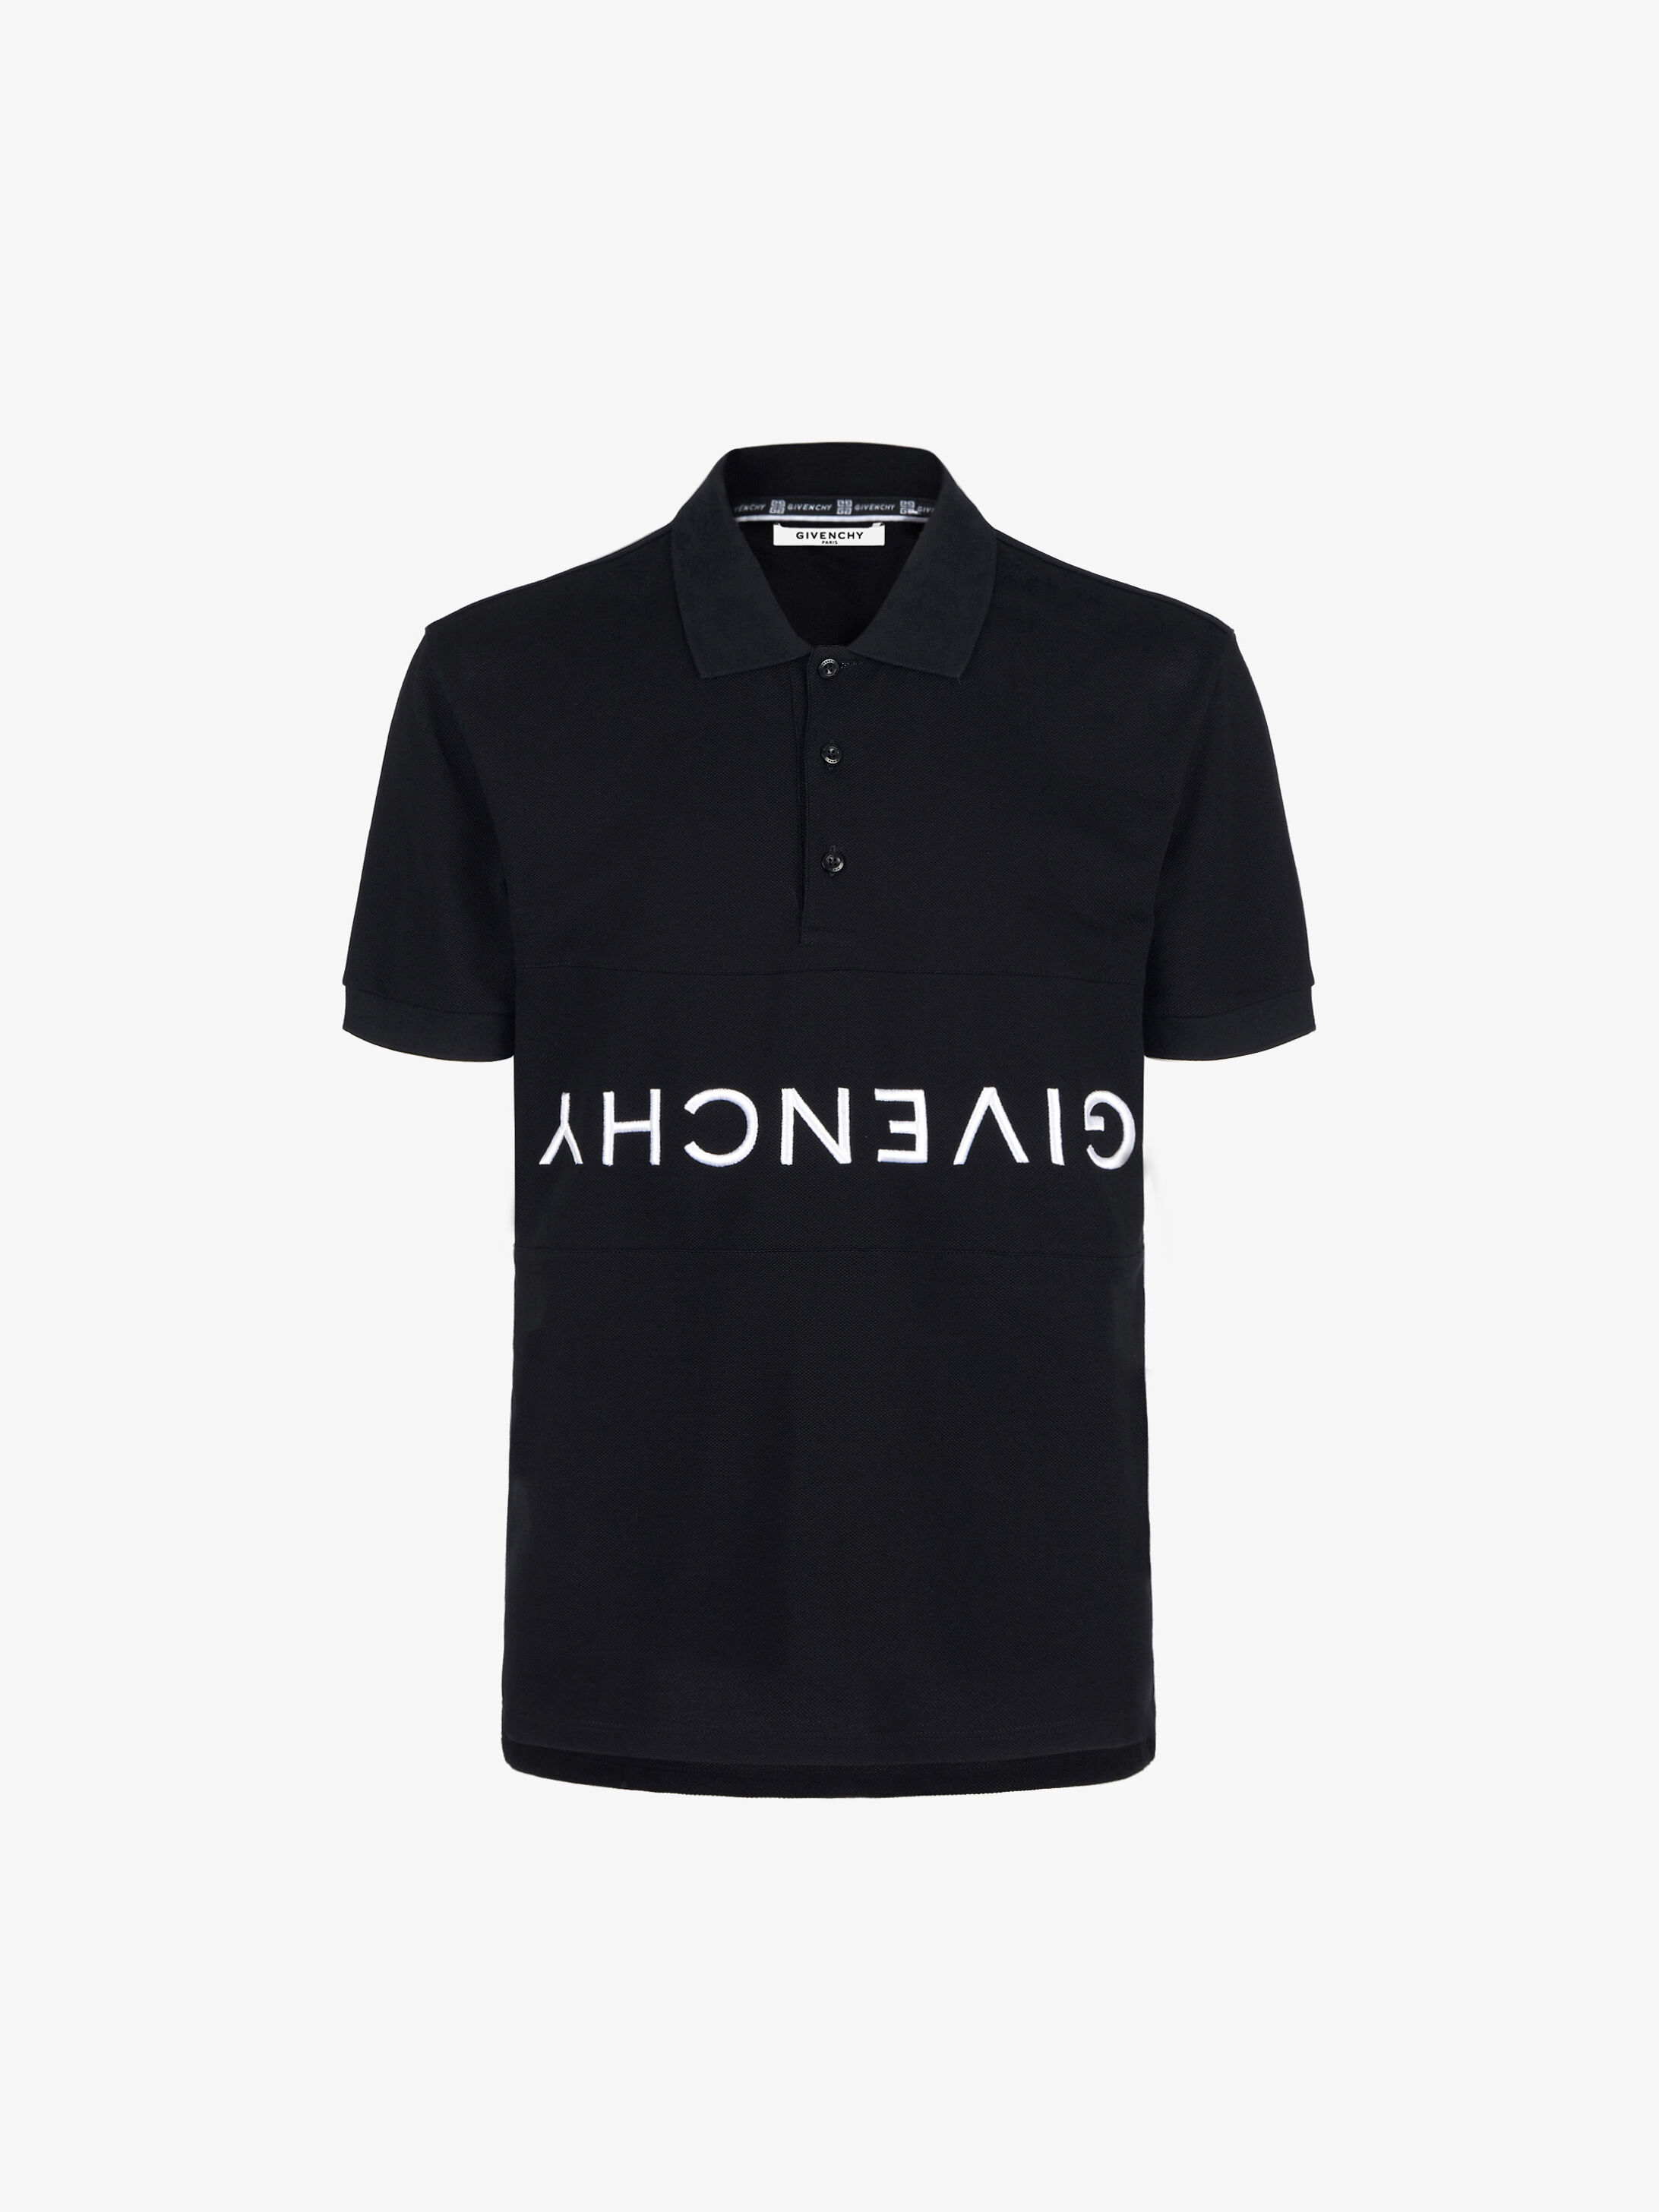 Mens T Shirts Collection By Givenchy Givenchy Paris